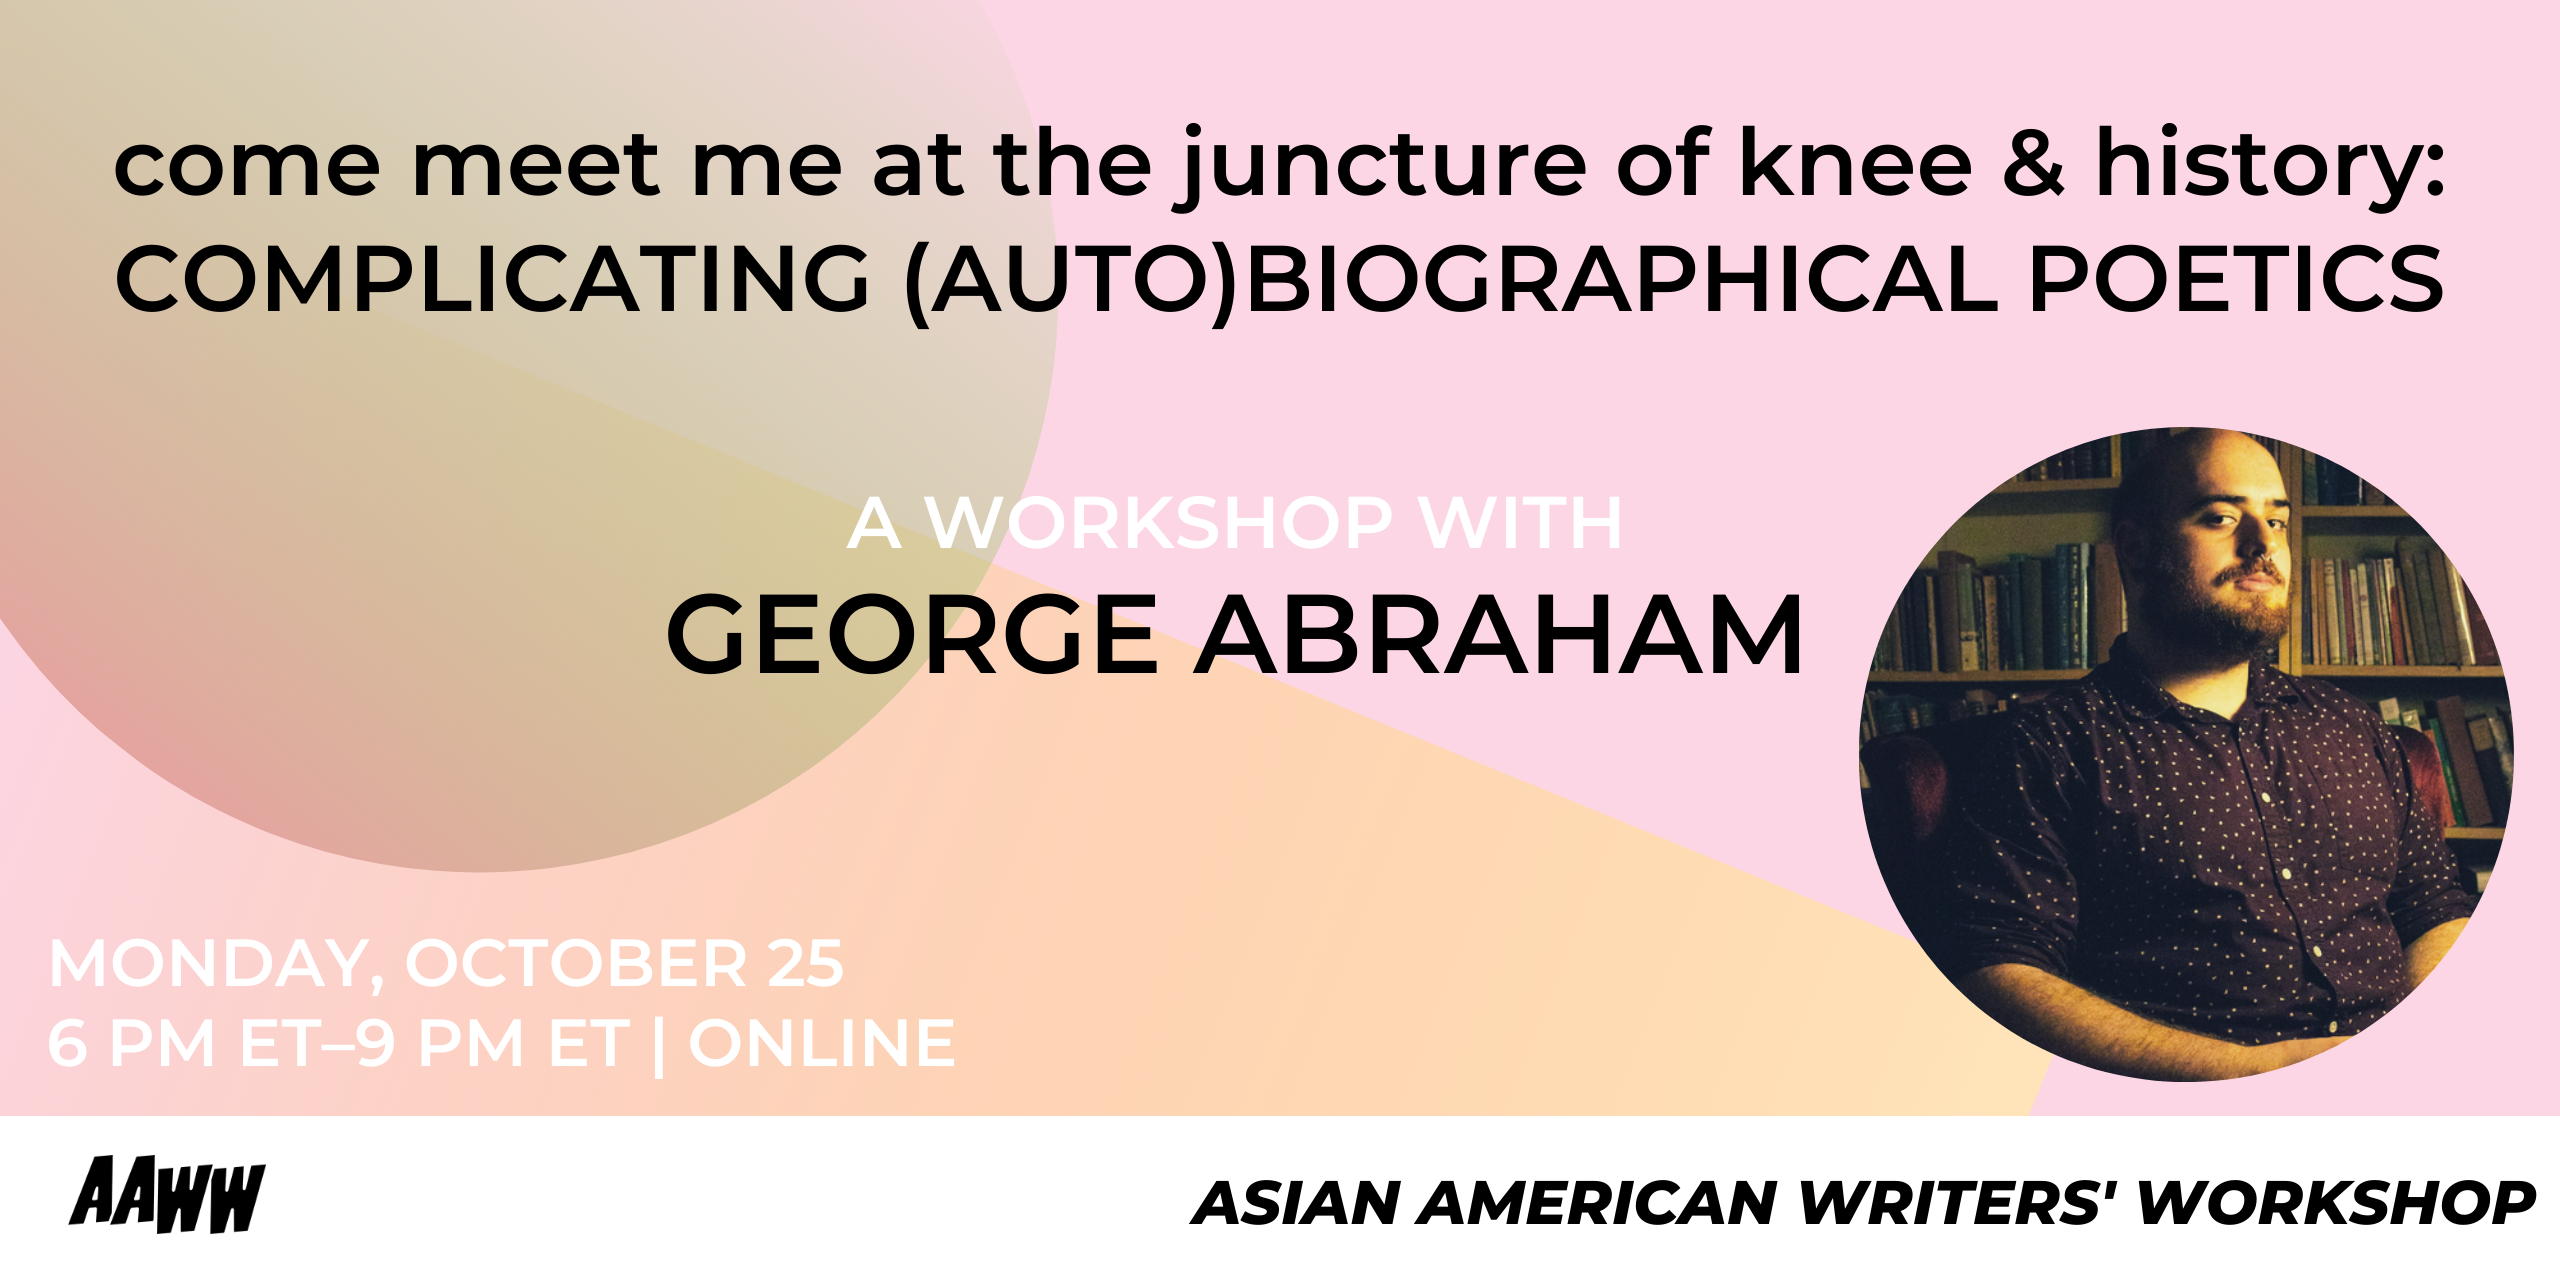 come meet me at the juncture of knee & history: Complicating (Auto)biographical Poetics, A Workshop with George Abraham